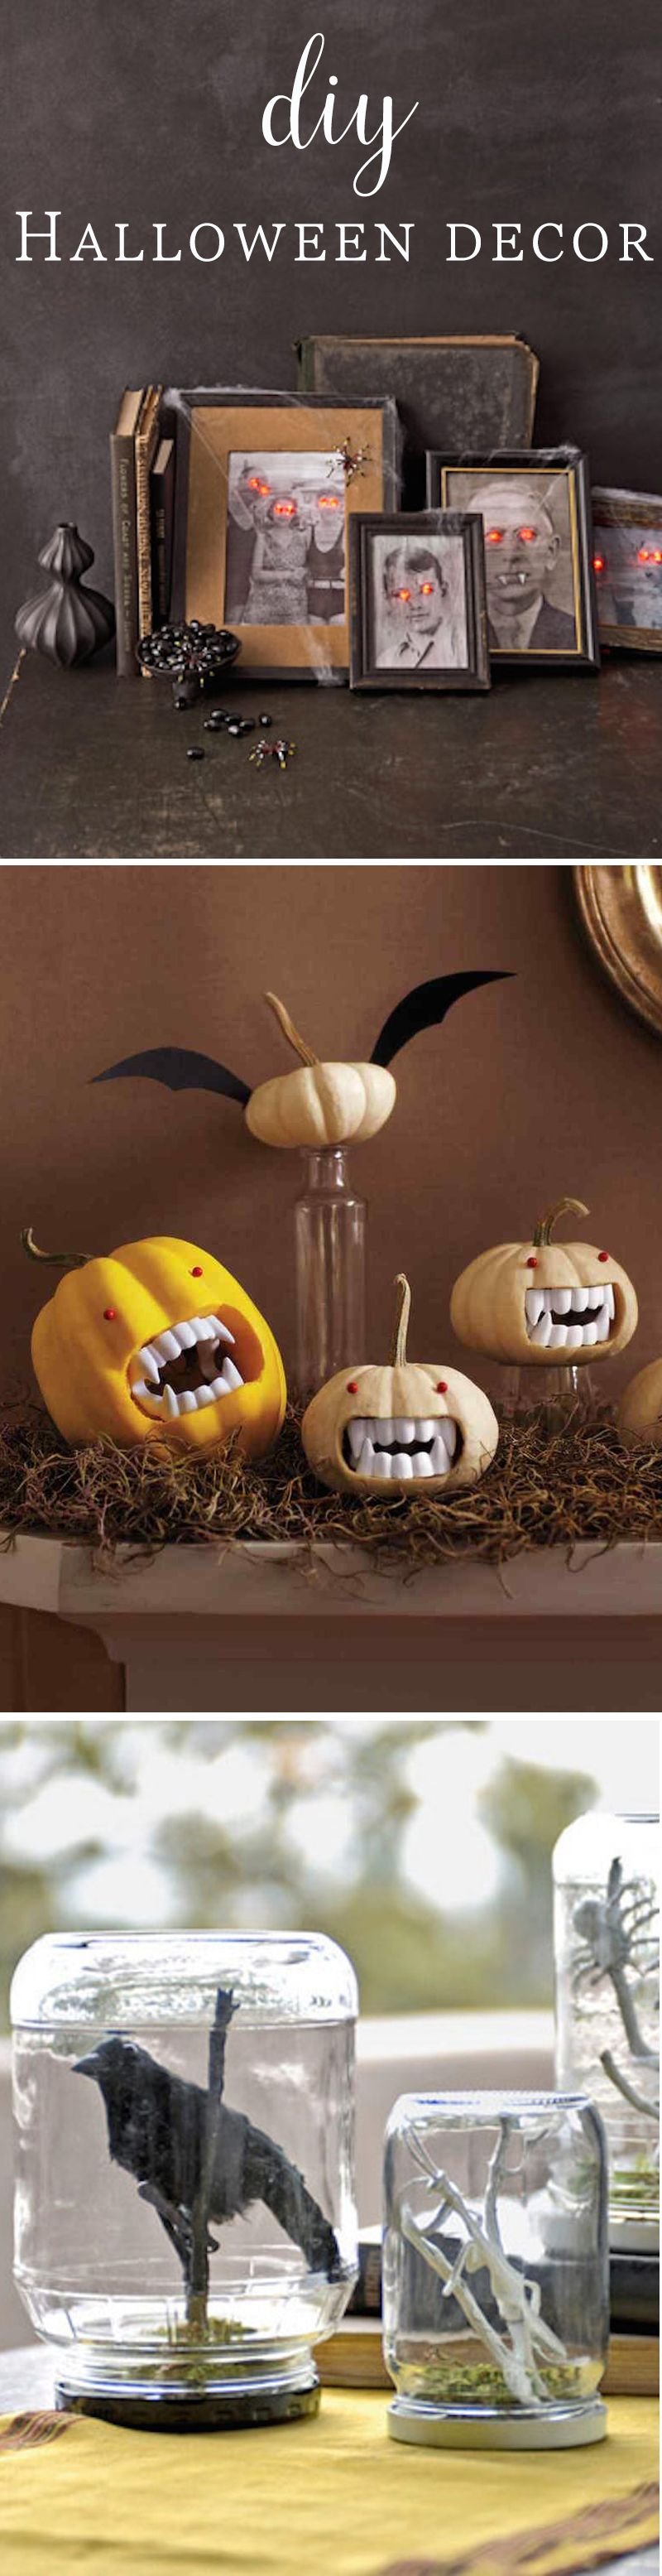 19 DIY Clever Halloween Party Decorating Tips Halloween DIY - scary halloween decor